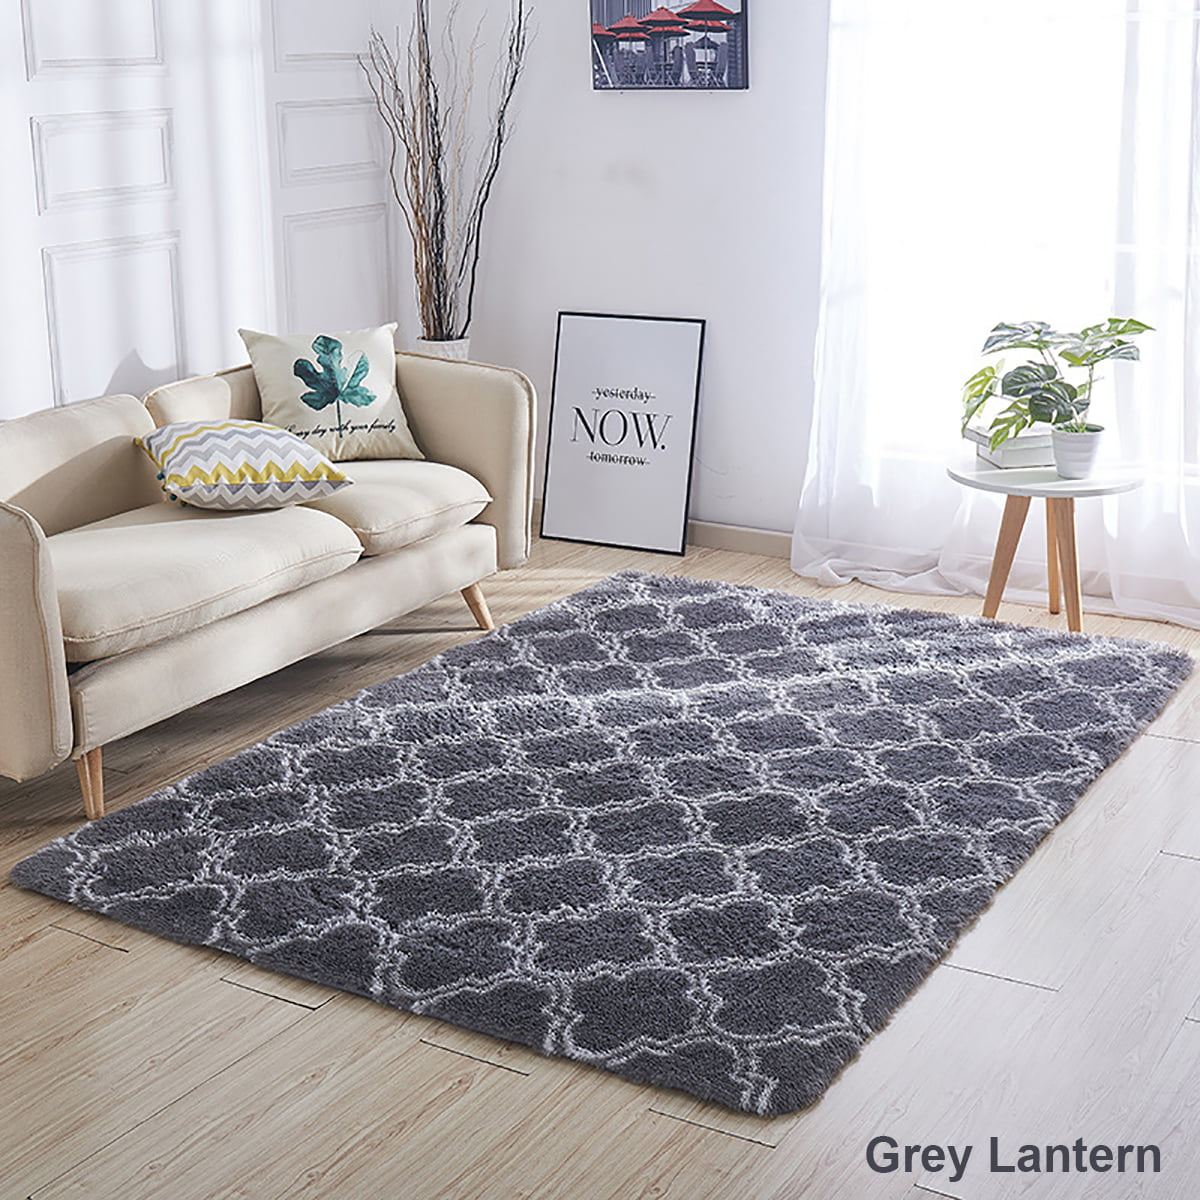 Floor Mat Rugs Gy Anti Skid Area, Carpet Images For Living Room